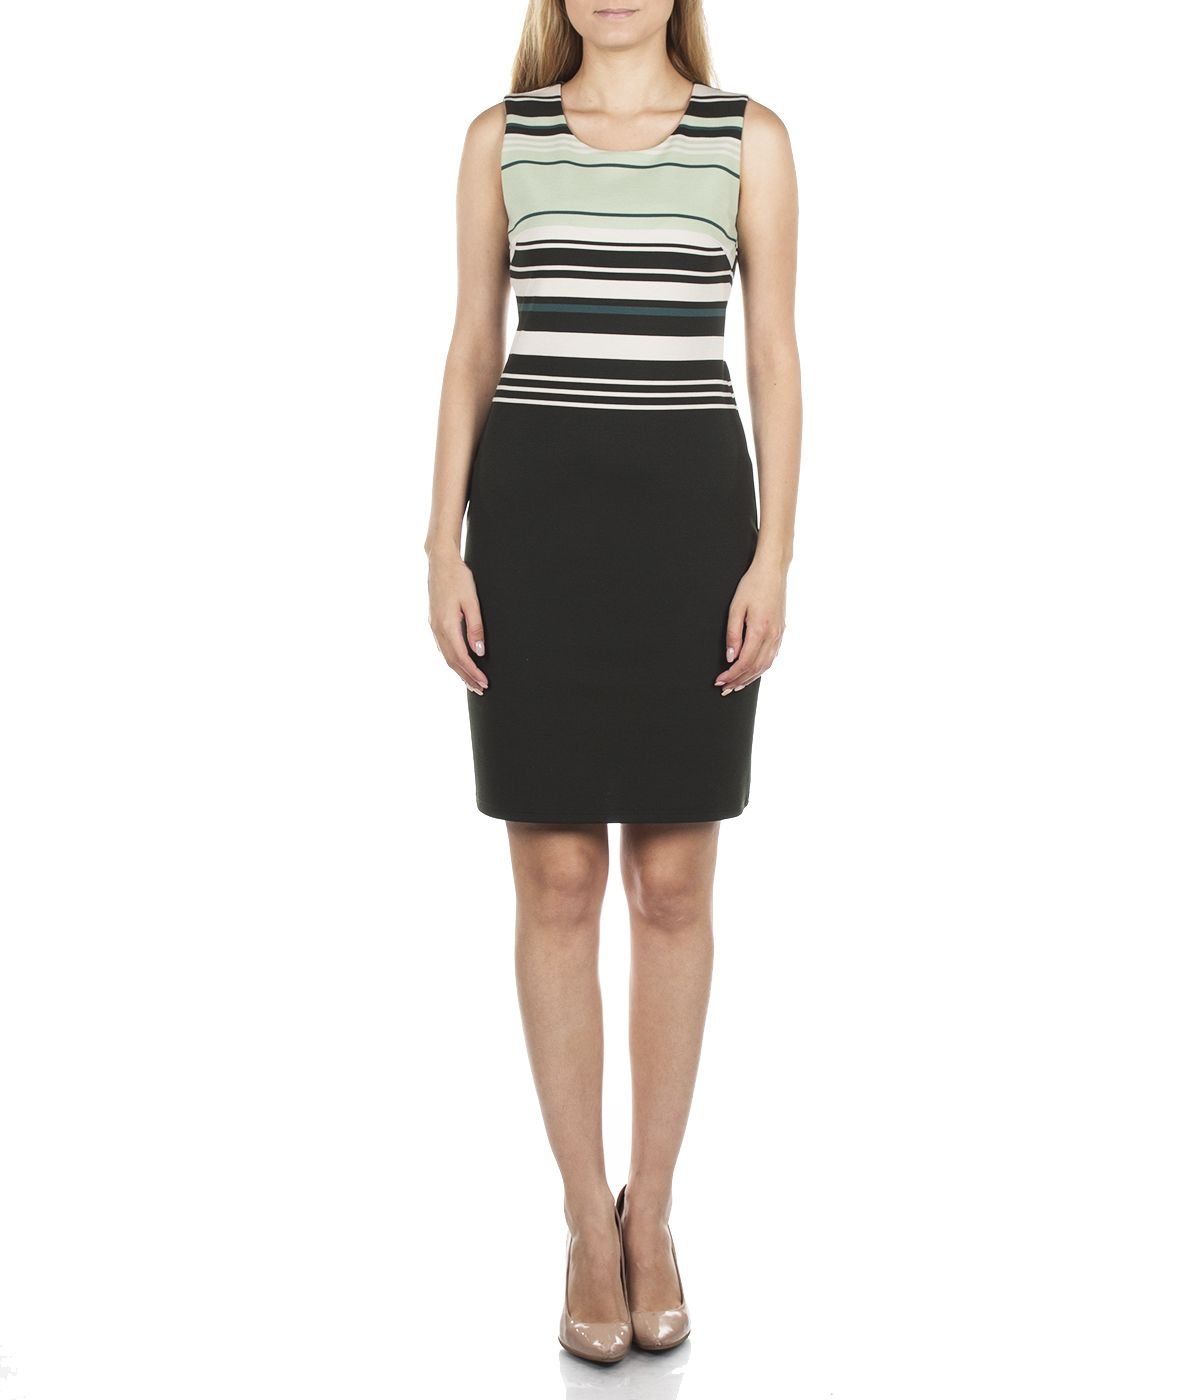 PENCIL SLEEVELESS DRESS WITH STRIPES AND ROUND NECKLINE 2